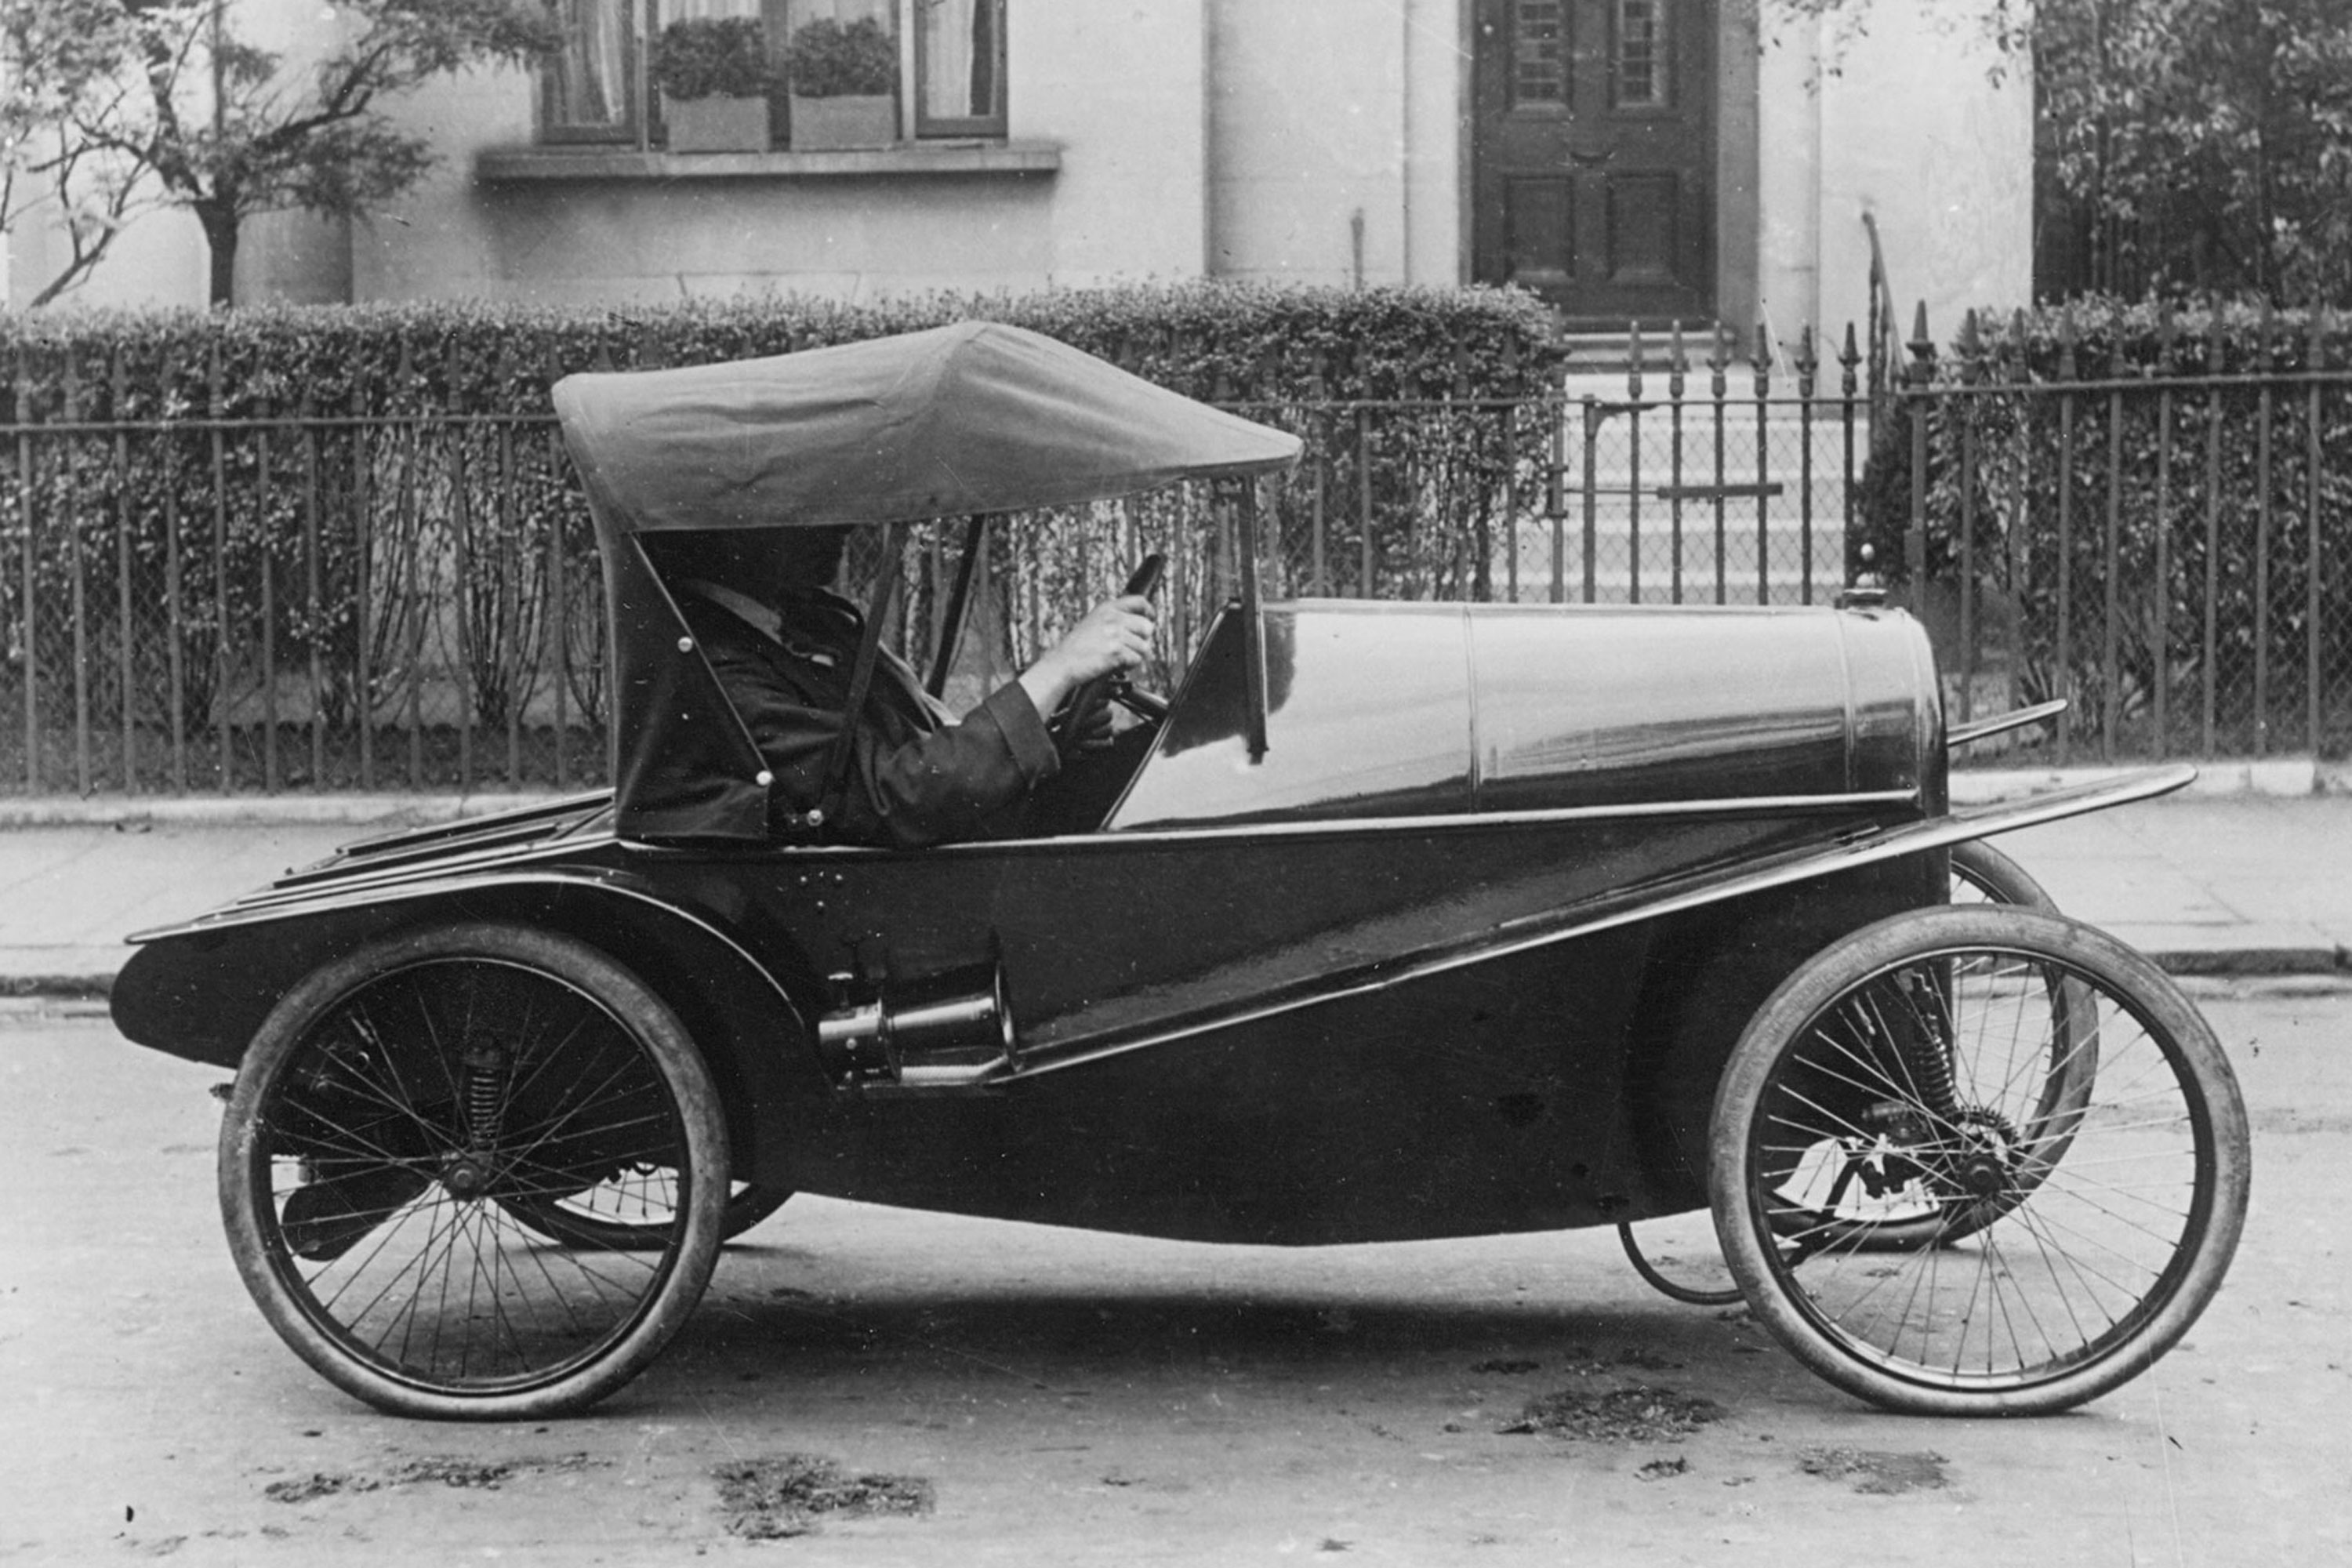 Archive image of Carden cycle car, 1919